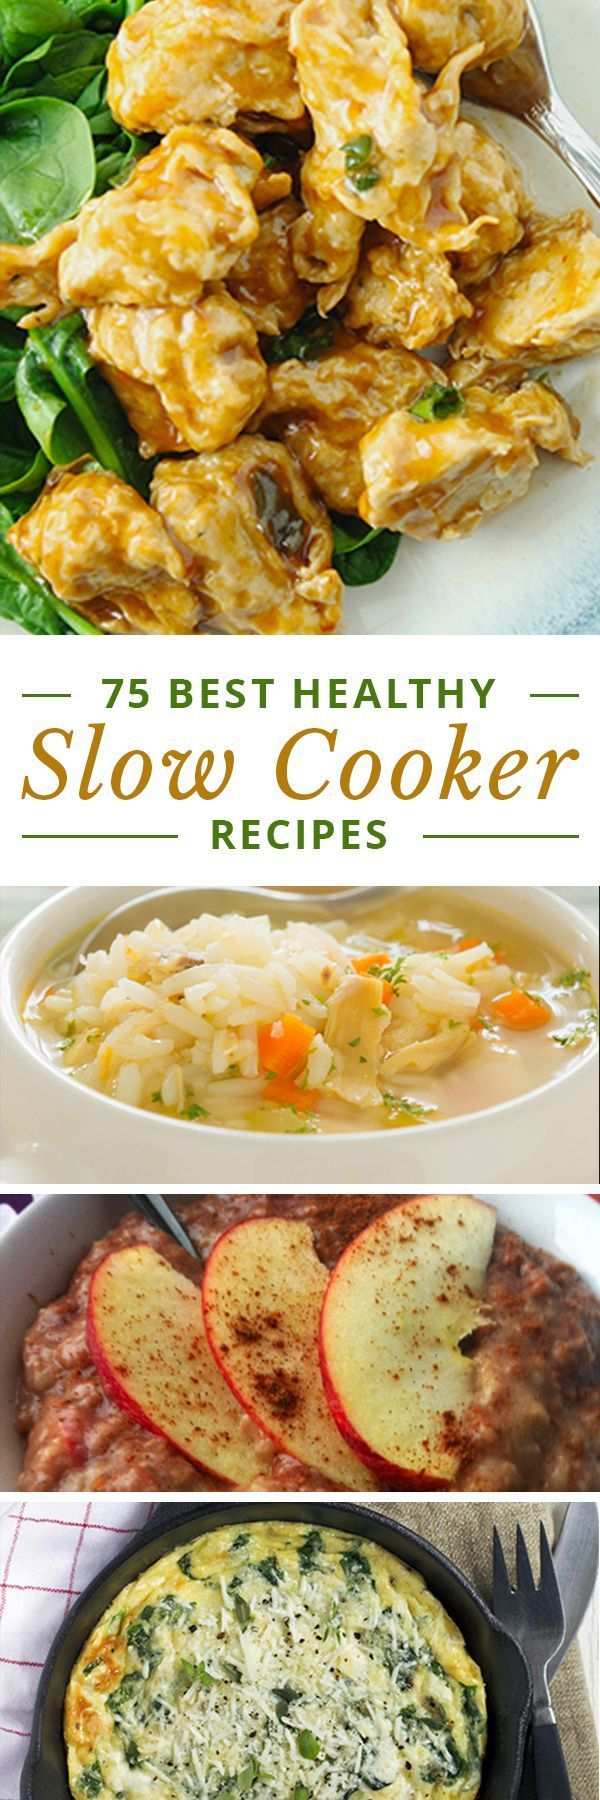 You must try these amazing Slow Cooker recipes in your healthy menu plan!  #menuplanning #slowcooker #crockpotrecipes